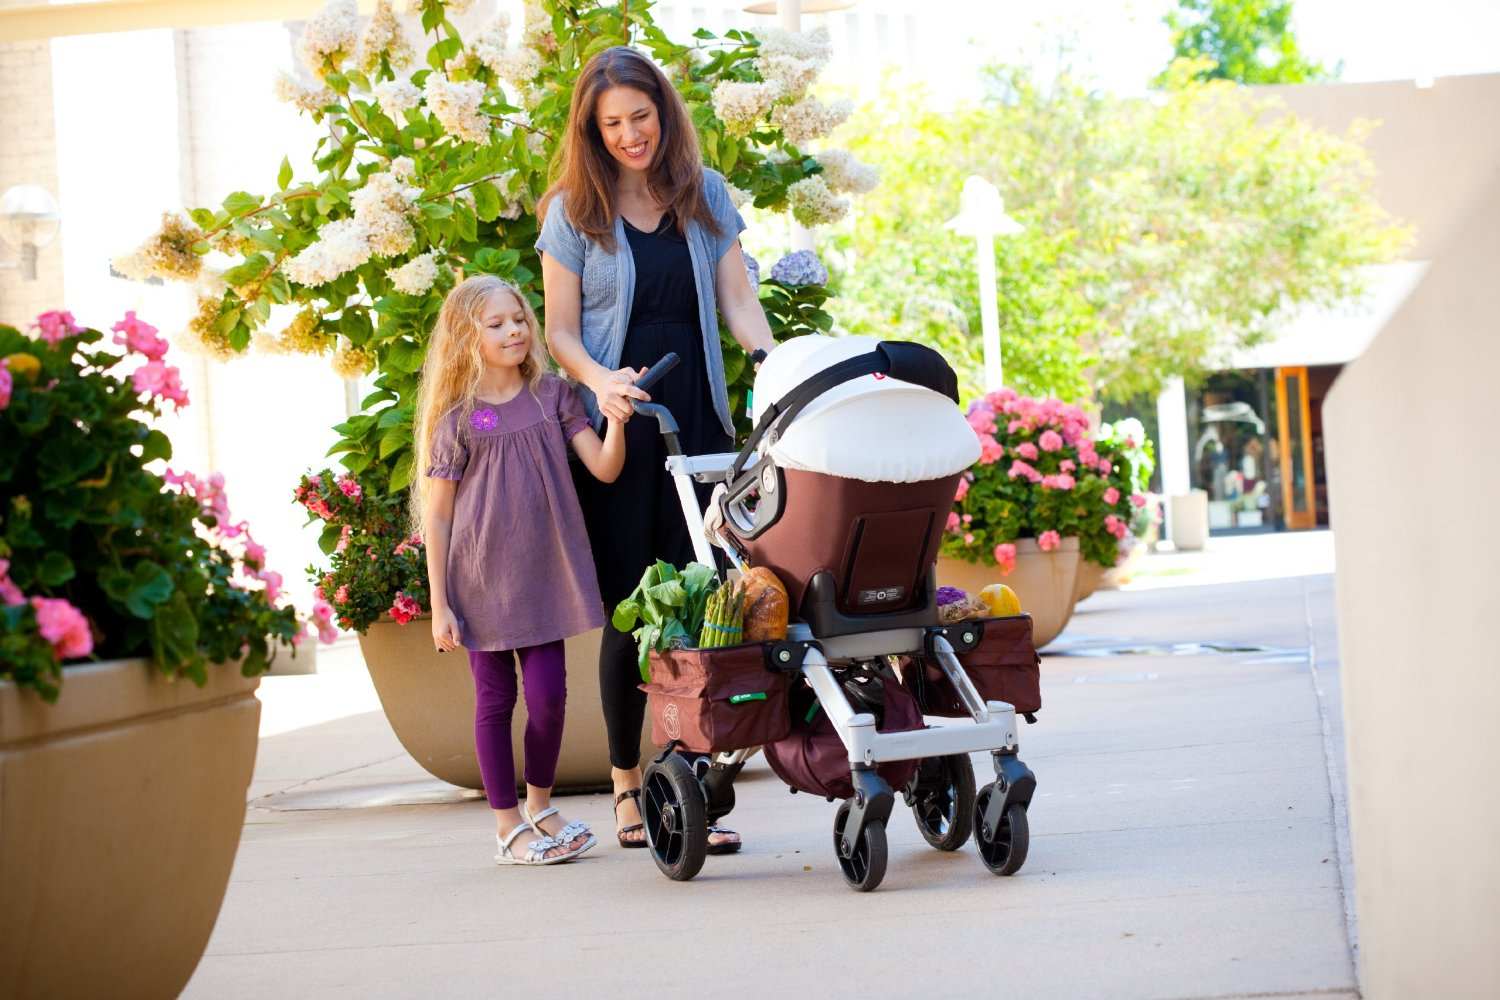 Orbit-Baby-Stroller-Travel-System-G2-Ruby-Reviews